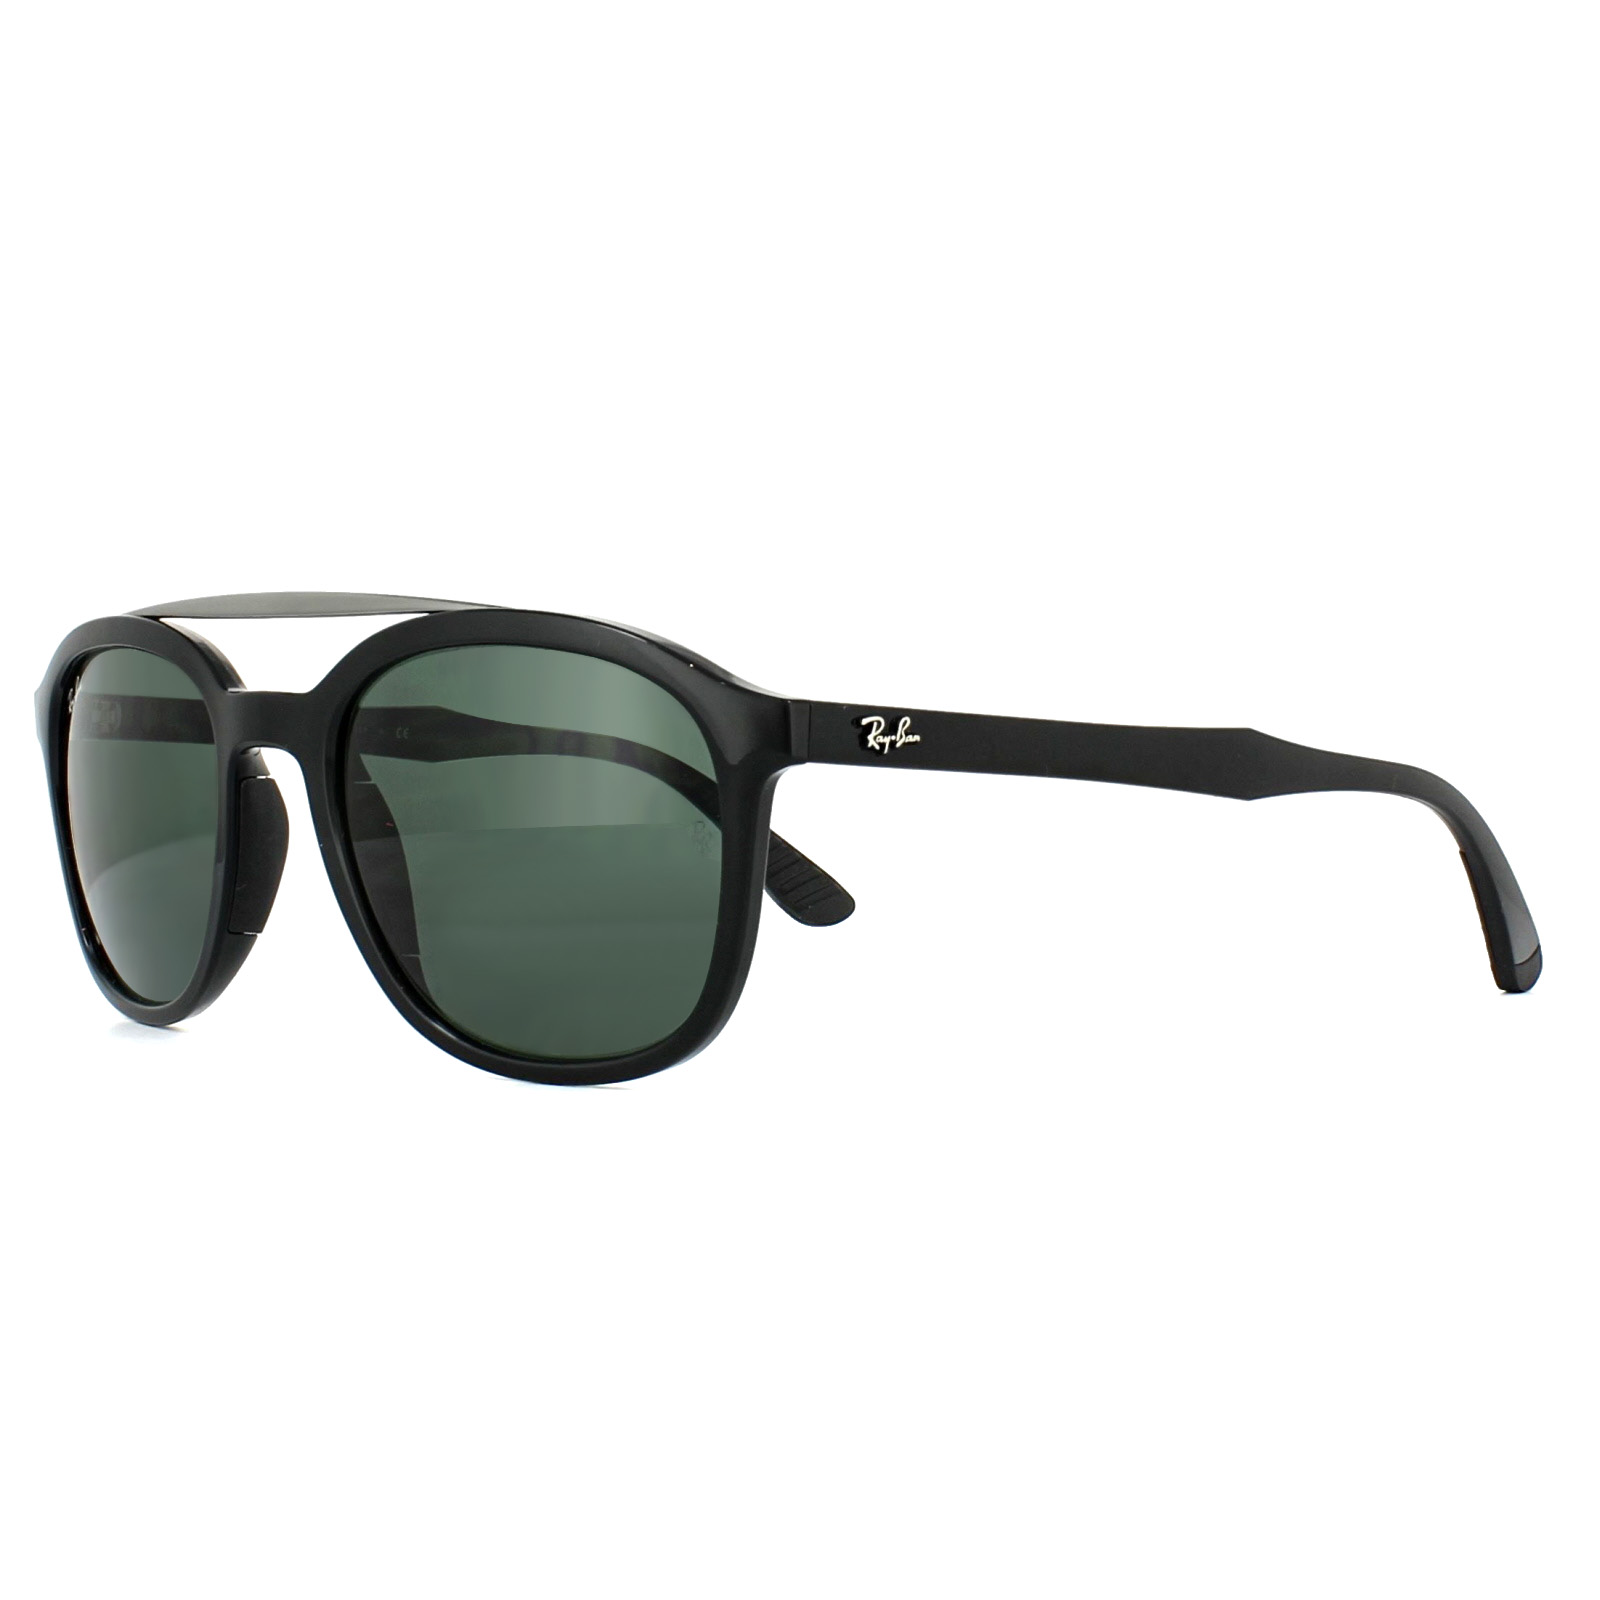 90b4530f6c1c3 Ray-Ban Sunglasses 4290 601 71 Black Green G-15 8053672840667   eBay